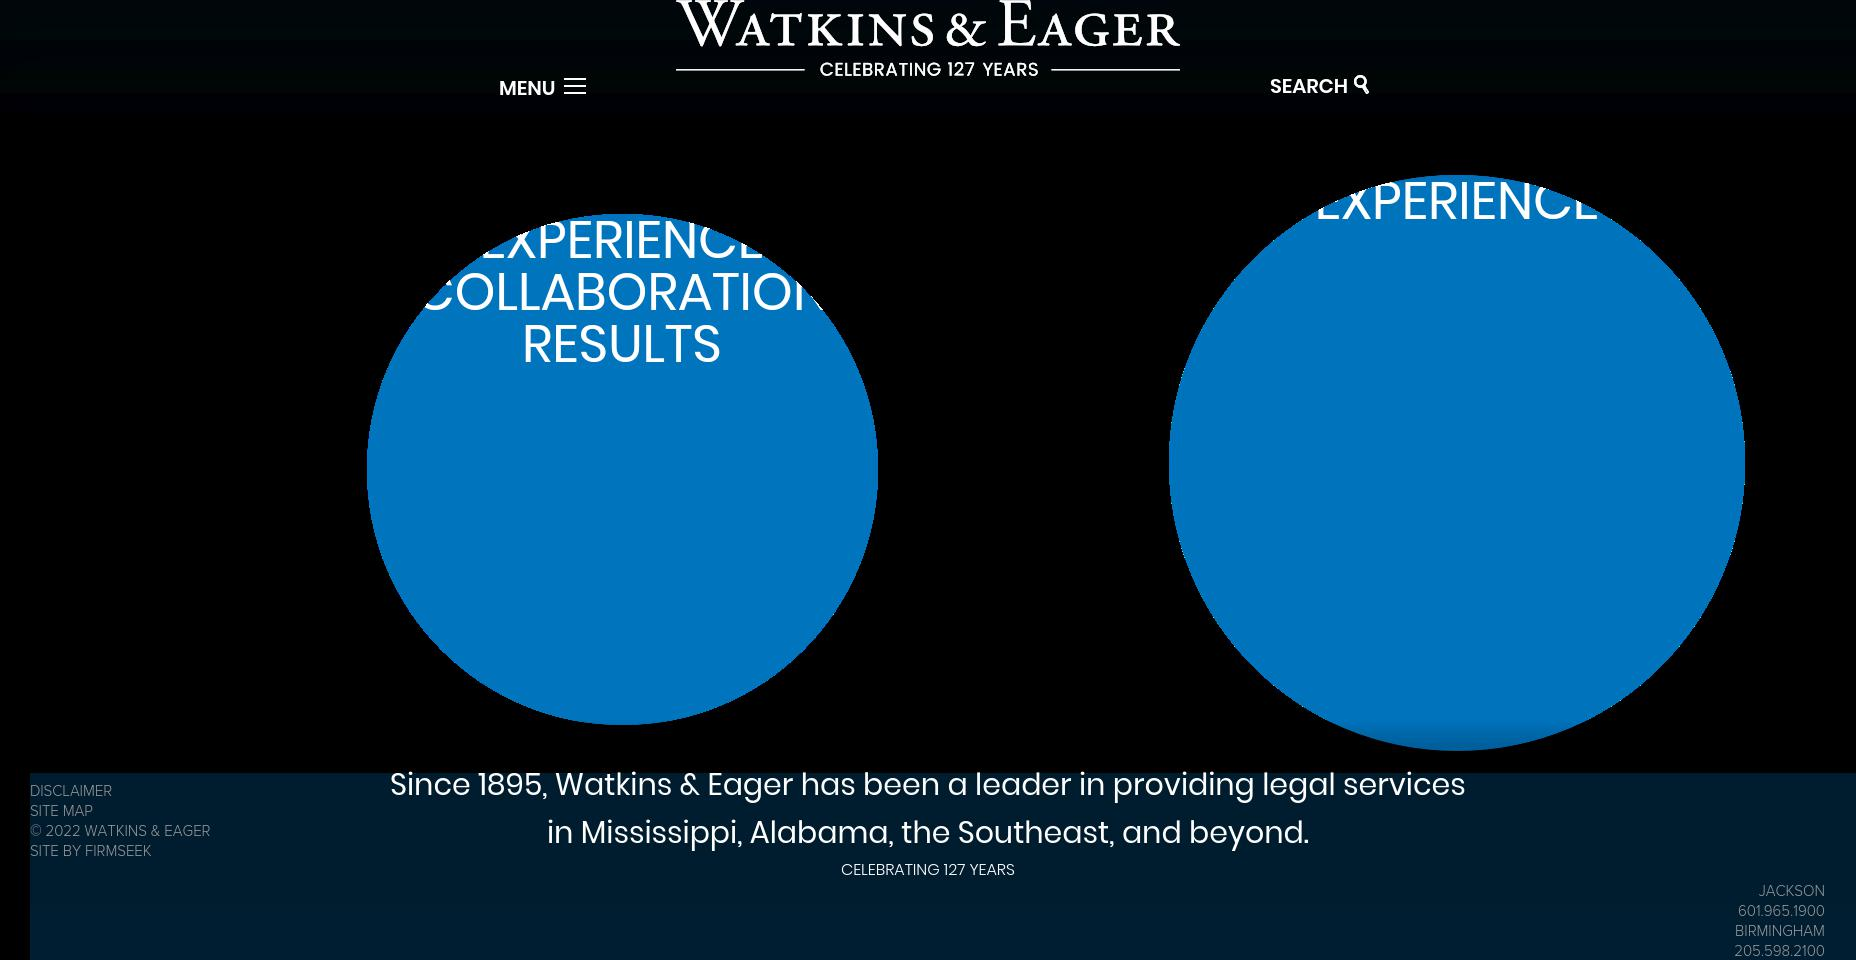 Watkins & Eager PLLC - Jackson MS Lawyers